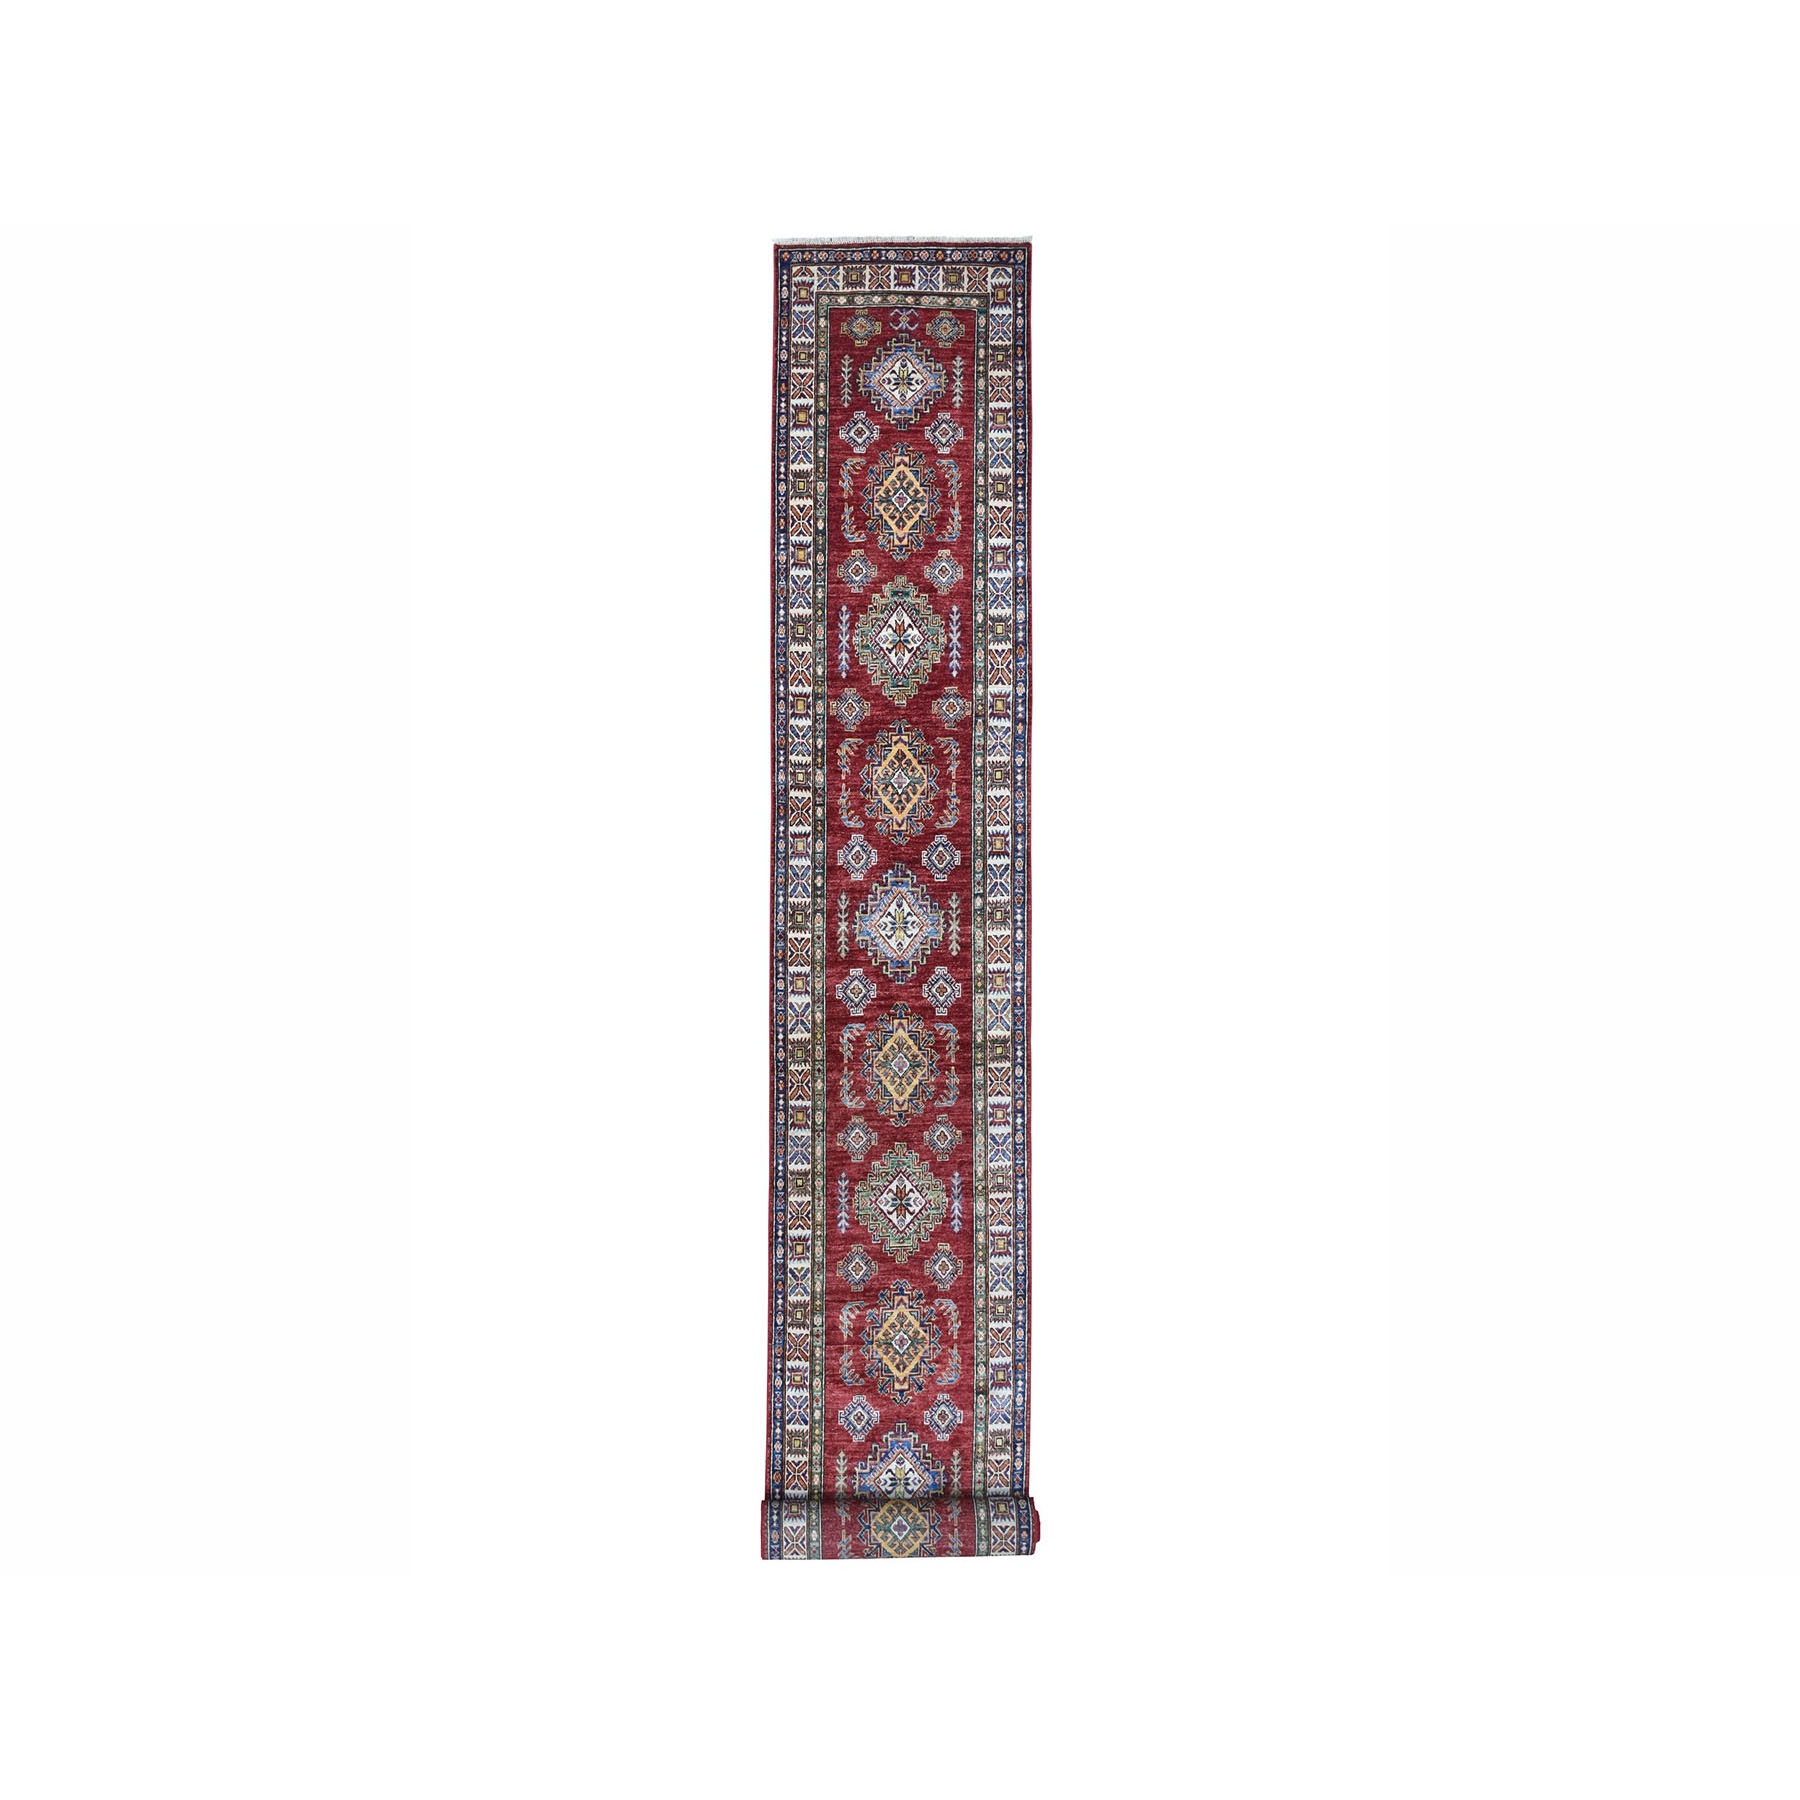 "2'8""X20'6"" Super Kazak Red Geometric Design Pure Wool Hand-Knotted Xl Runner Oriental Rug moae00b0"